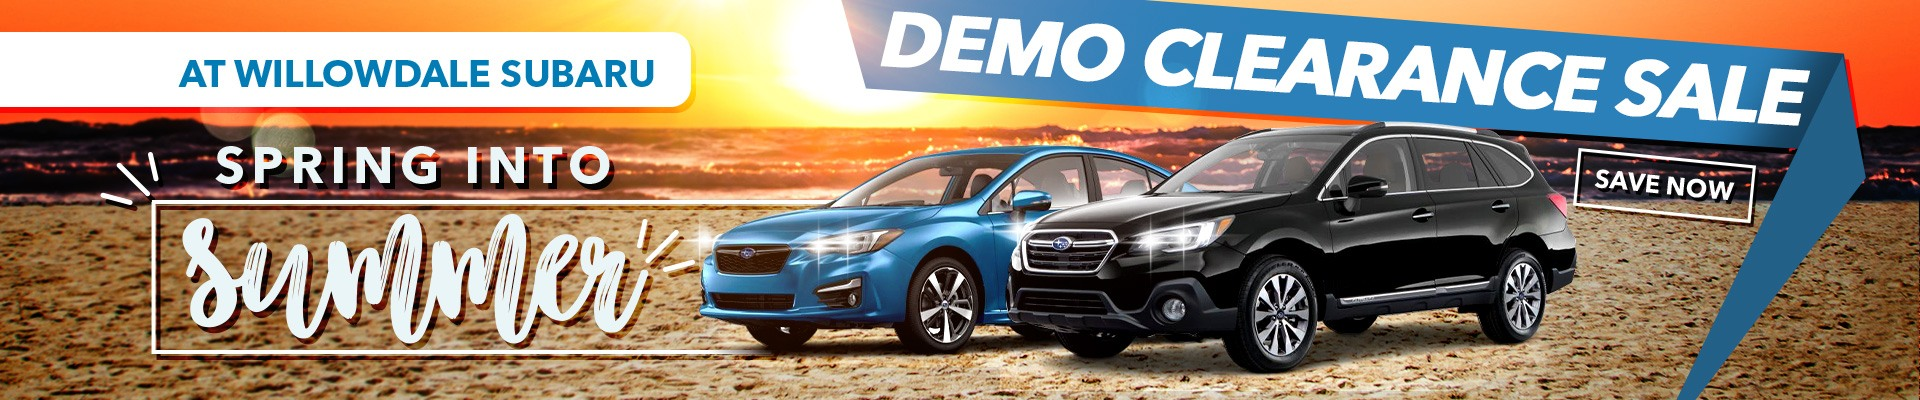 Spring into Summer at Willowdale Subaru with the June Demo Clearance Sale